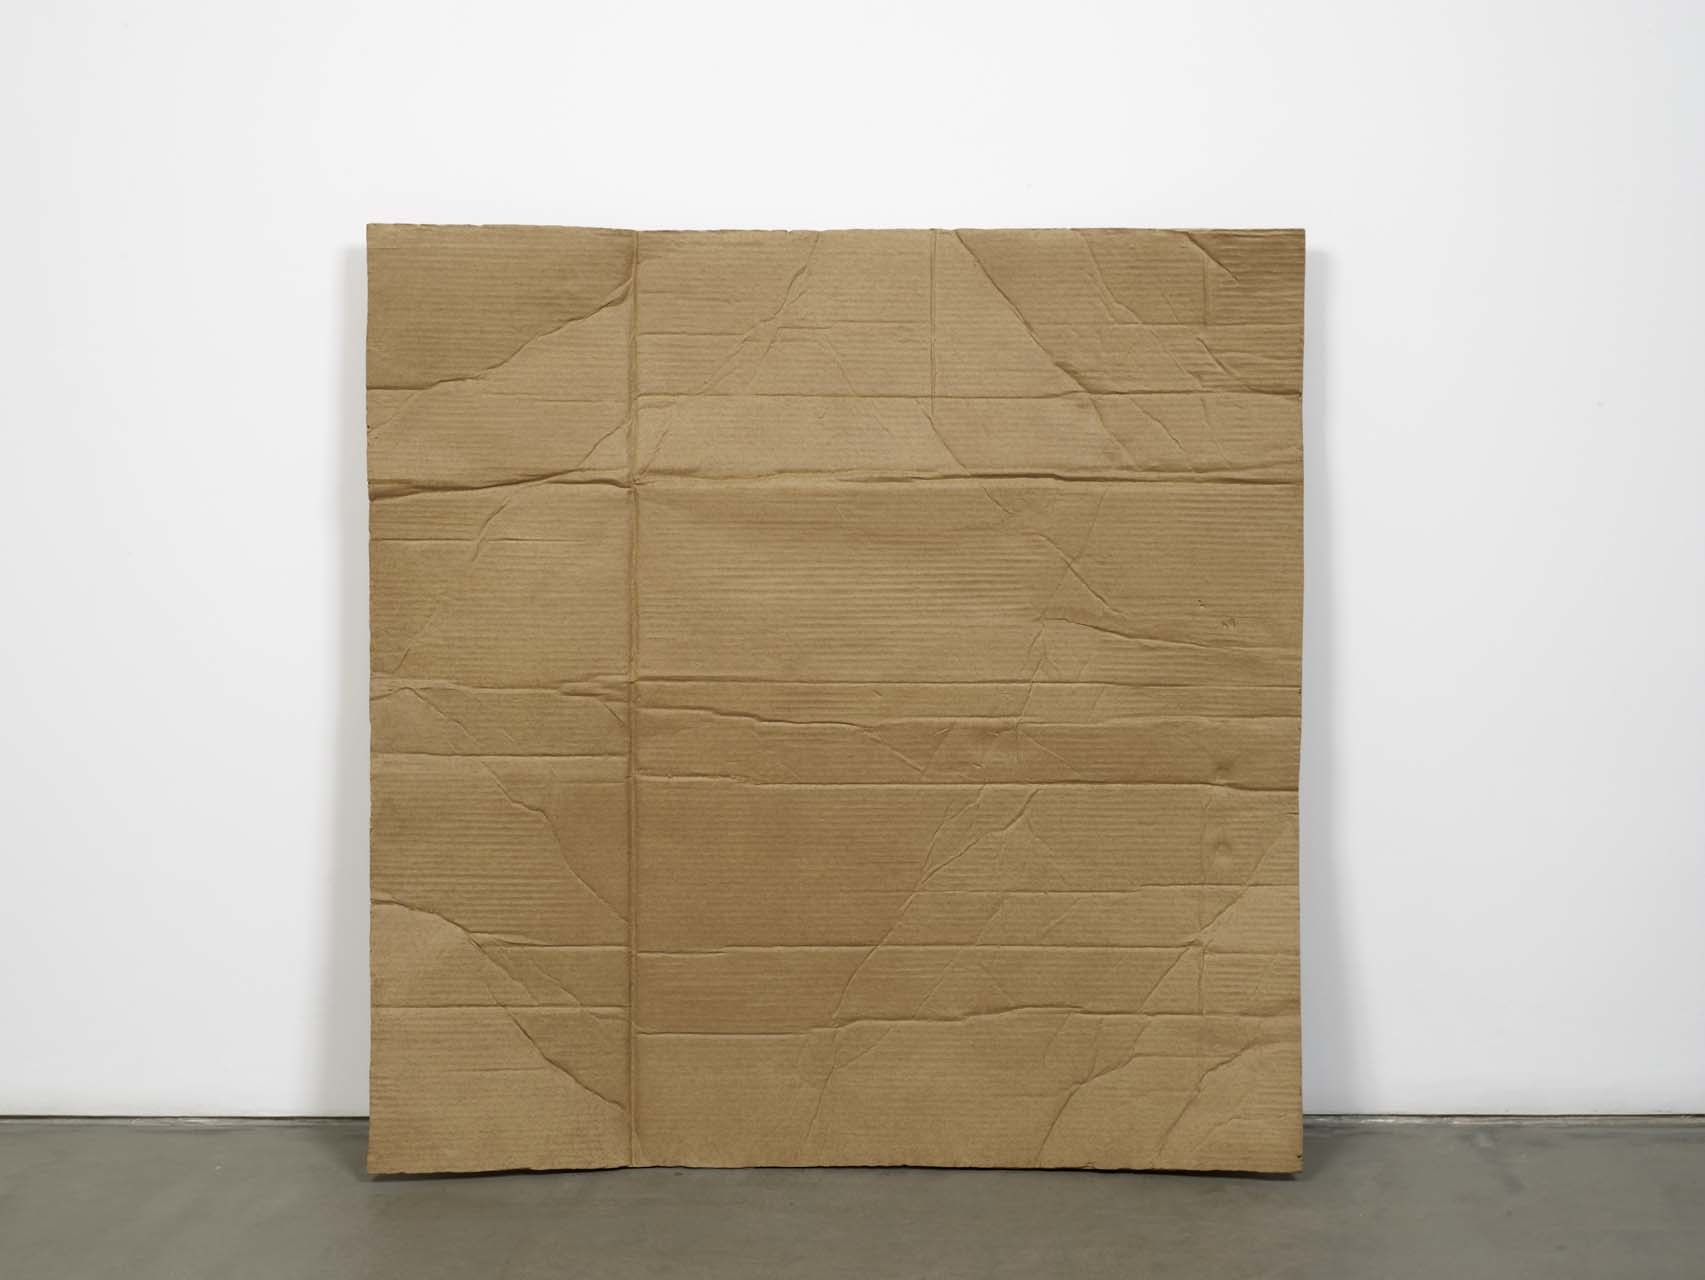 """<div class=""""artwork_caption""""><p>still.life. (cardboard leaning on the wall), 2009</p></div>"""